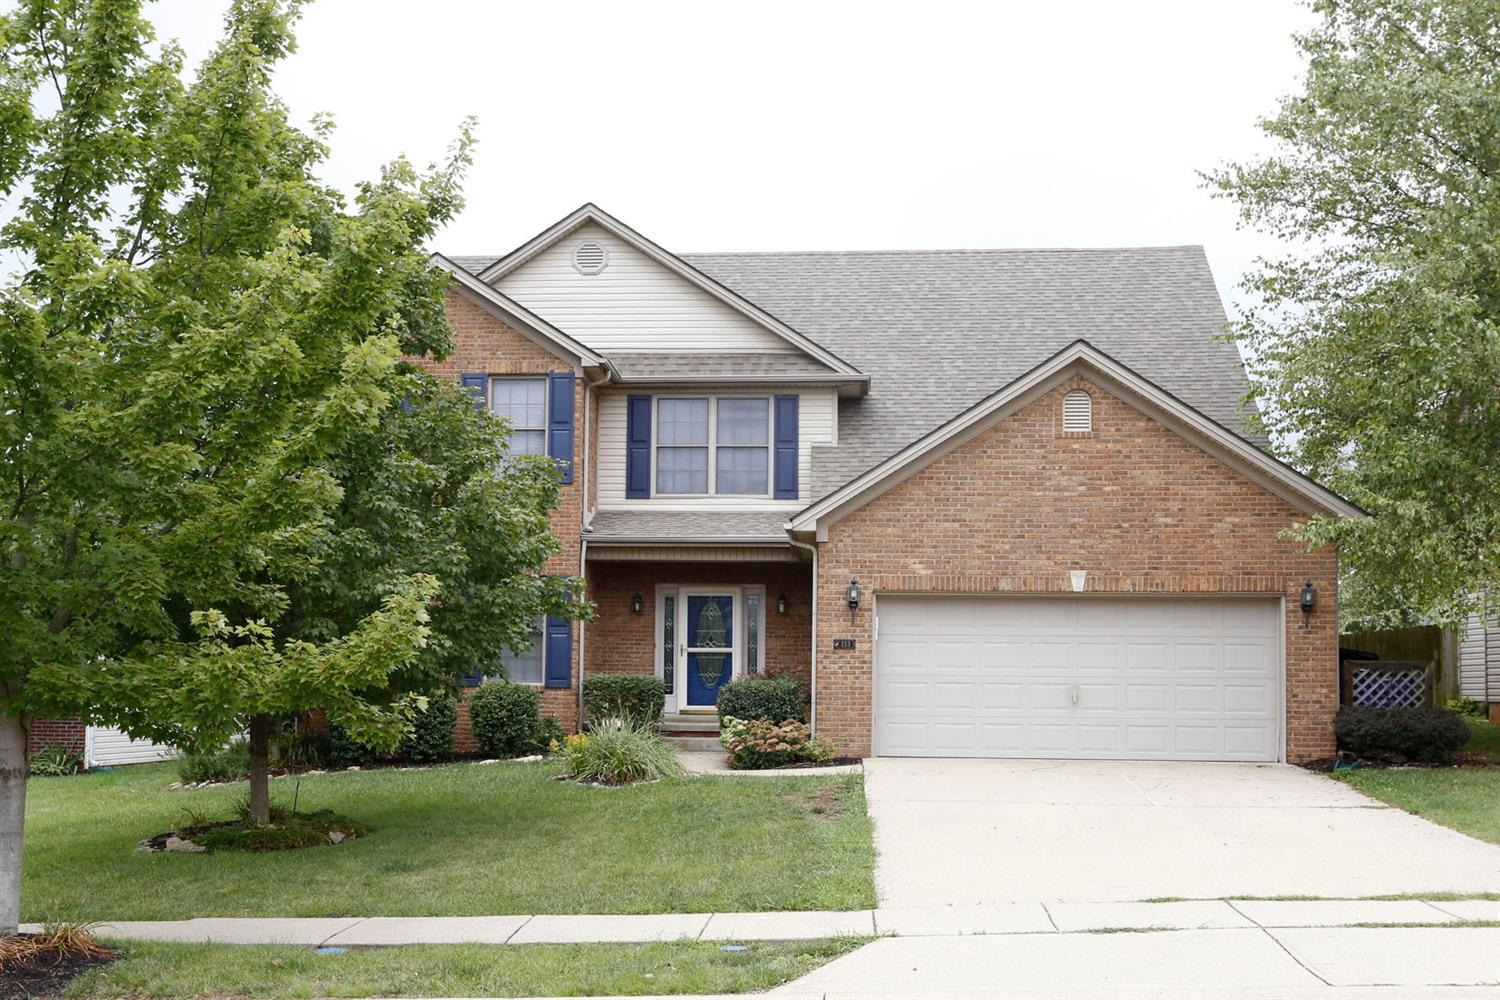 153 McConnells Trace, Lexington, KY 40511